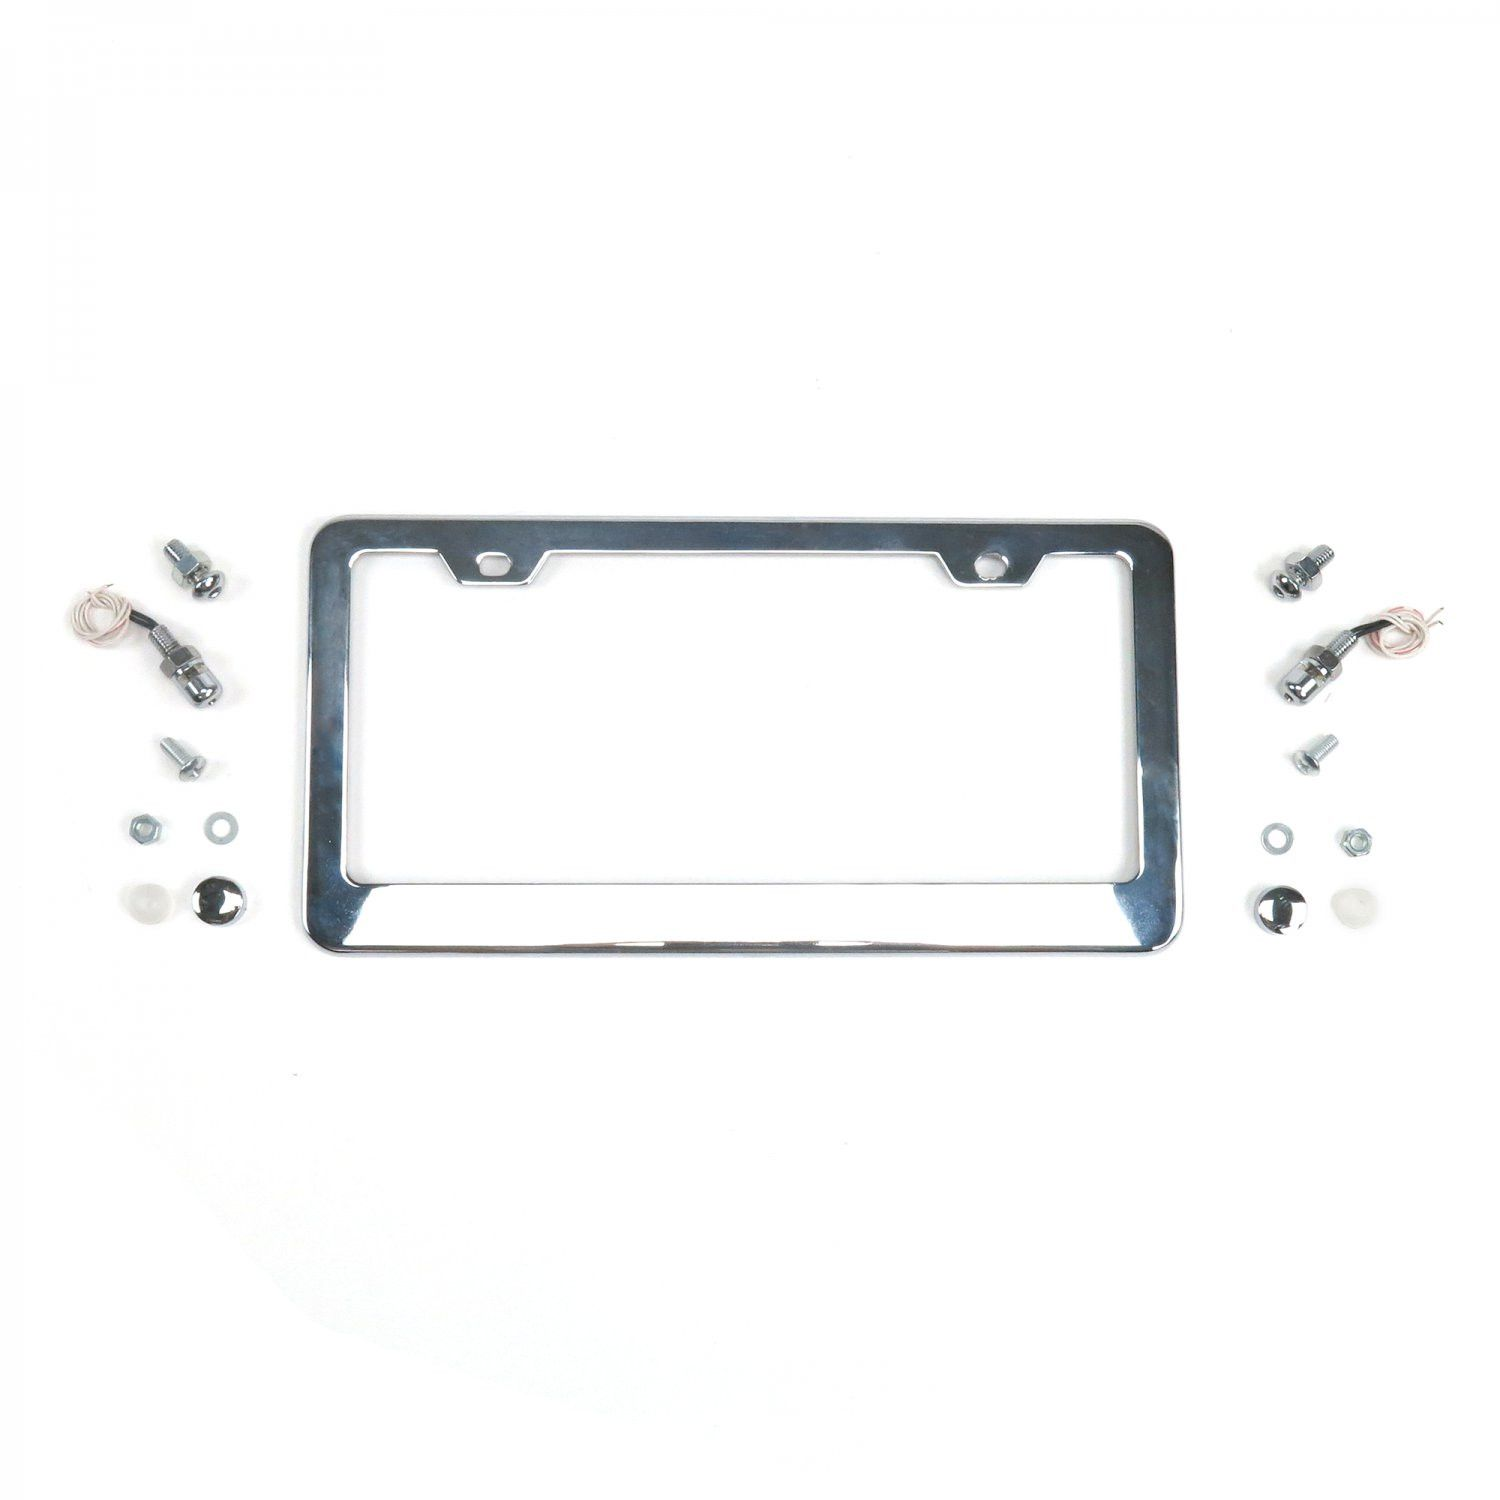 Illuminated Chrome License Plate Frame w Light Bolts and Caps - Autoloc's Illuminated Chrome License Plate Frame w/ Light Bolts and Caps.Don't let your car or truck leave the garage with out our chrome metal LED lighted license plate frames. High quality chrome license plate frames give your car or truck that finished detail. It's really hard to find a good quality chrome license plate frame. These are among the best available.Bolts and caps included. Check out our unlighted chrome license…